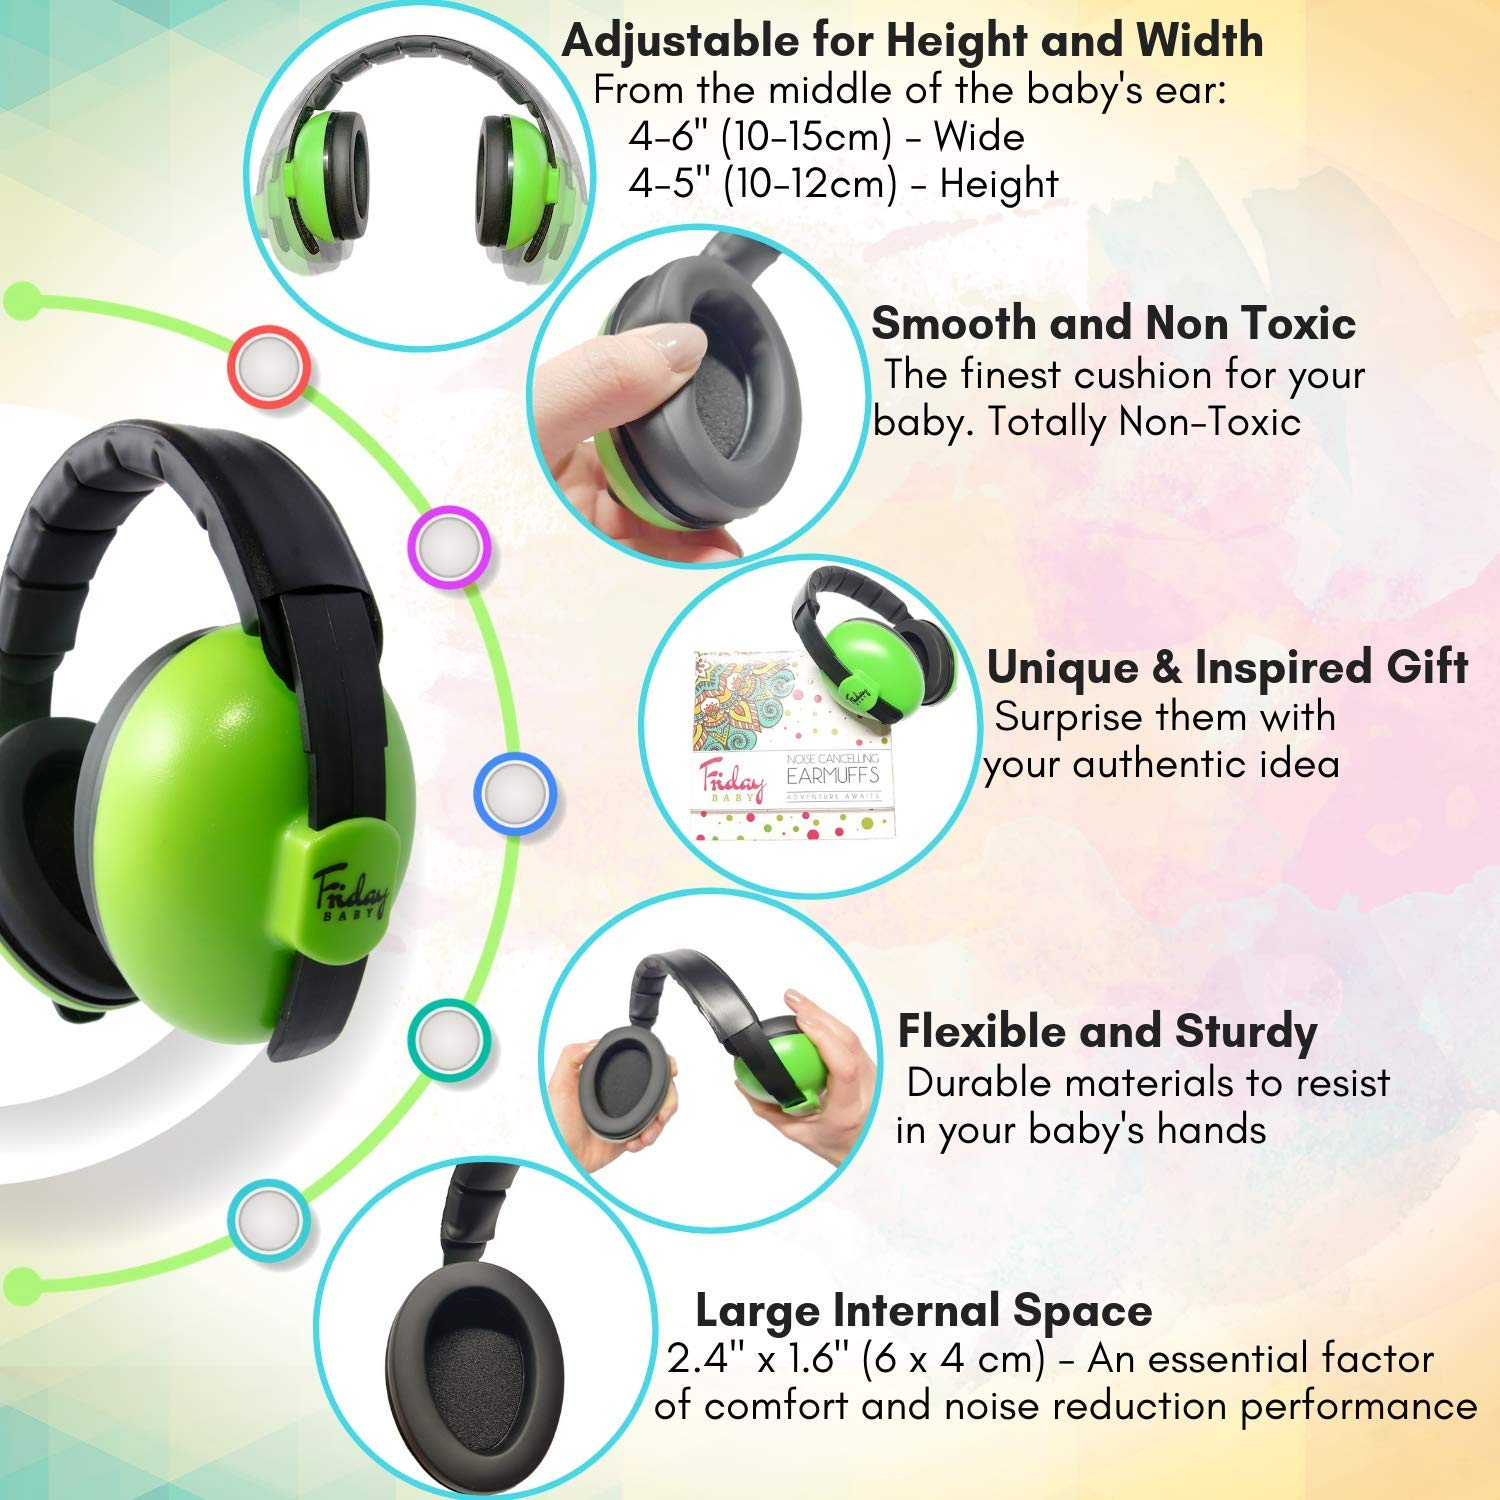 Baby Ear Protection - Comfortable and Adjustable Premium Noise Cancelling Headphones for Babies, Infants, Newborns (0-2+ Years) | Best Baby Headphones Noise Reduction for Concerts, Fireworks & Travels by Friday Baby (Image #2)